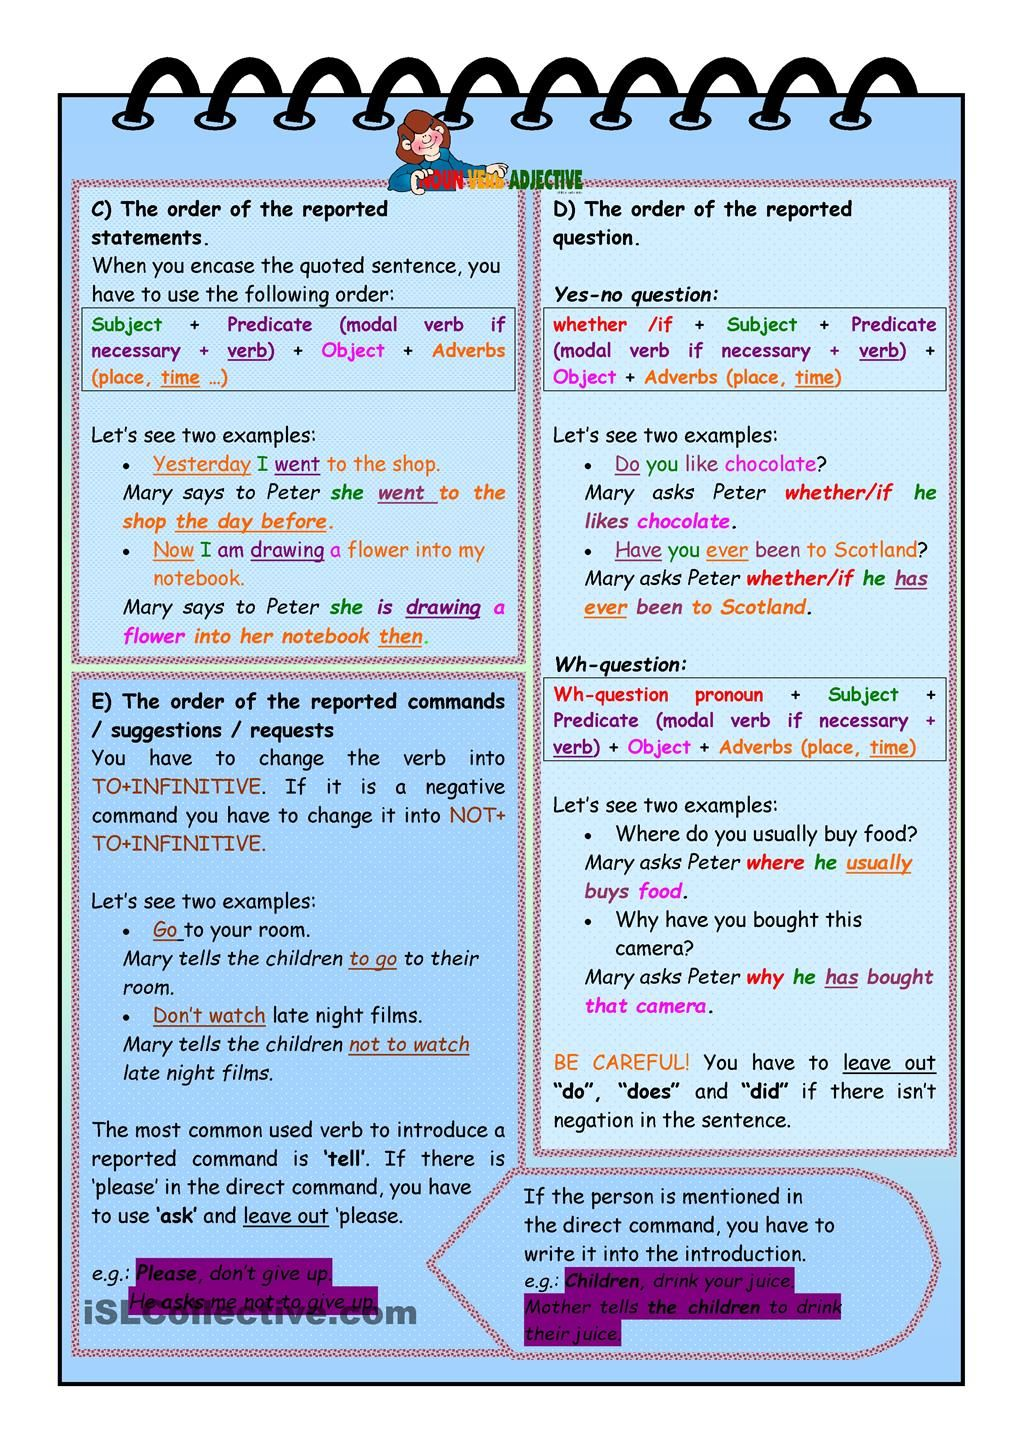 worksheet Step 1 Worksheet reported speech step by 1 grammar part teaching worksheet free esl printable worksheets made teachers